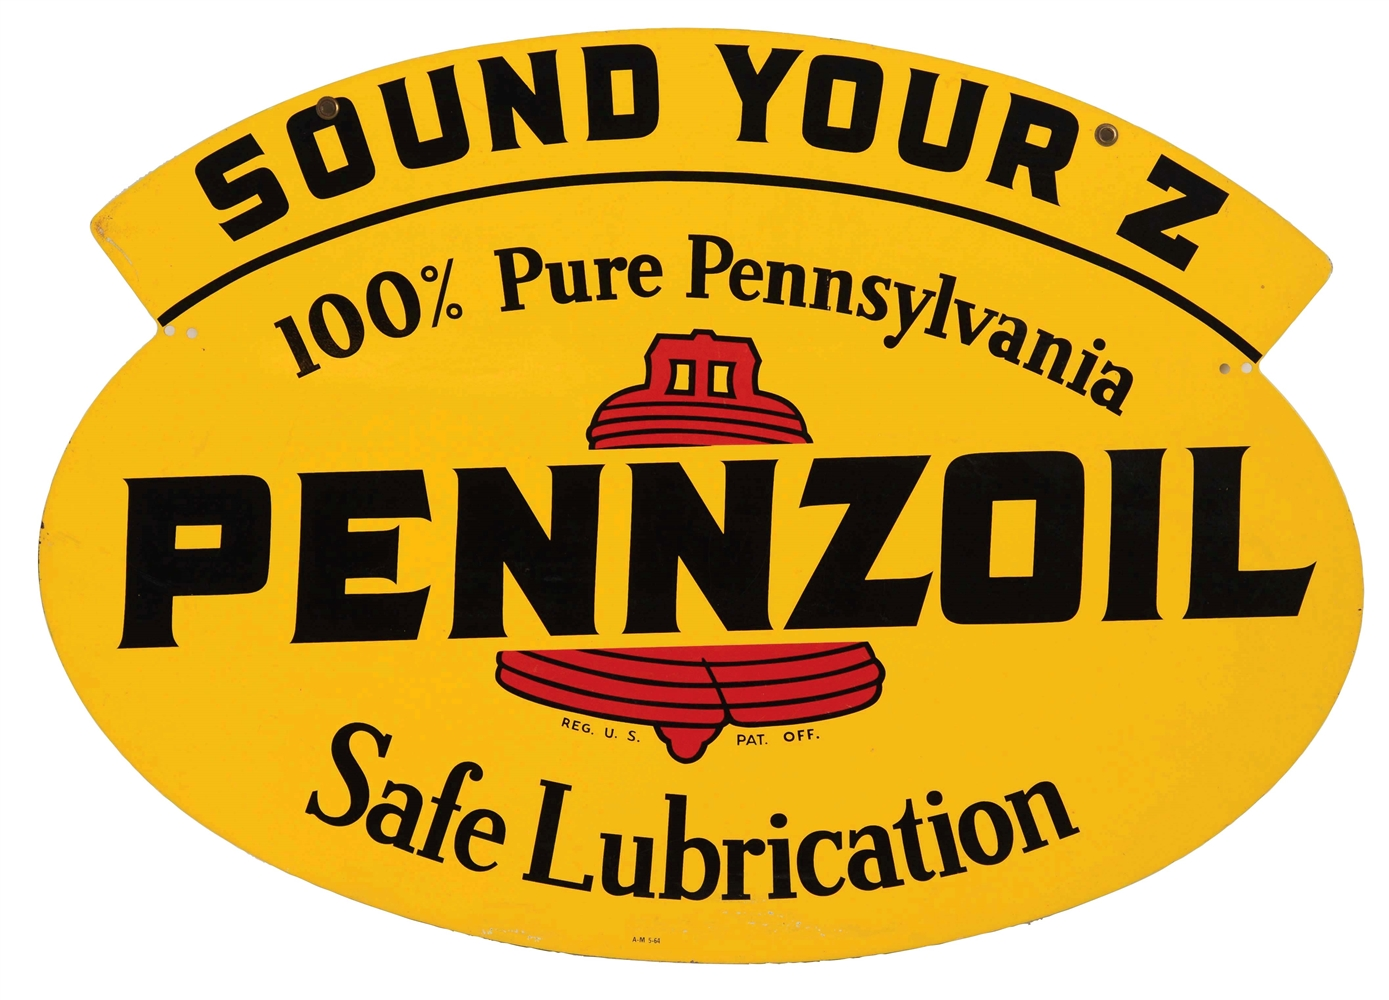 Pennzoil Sound Your Z Safe Lubrication Tin Sign.